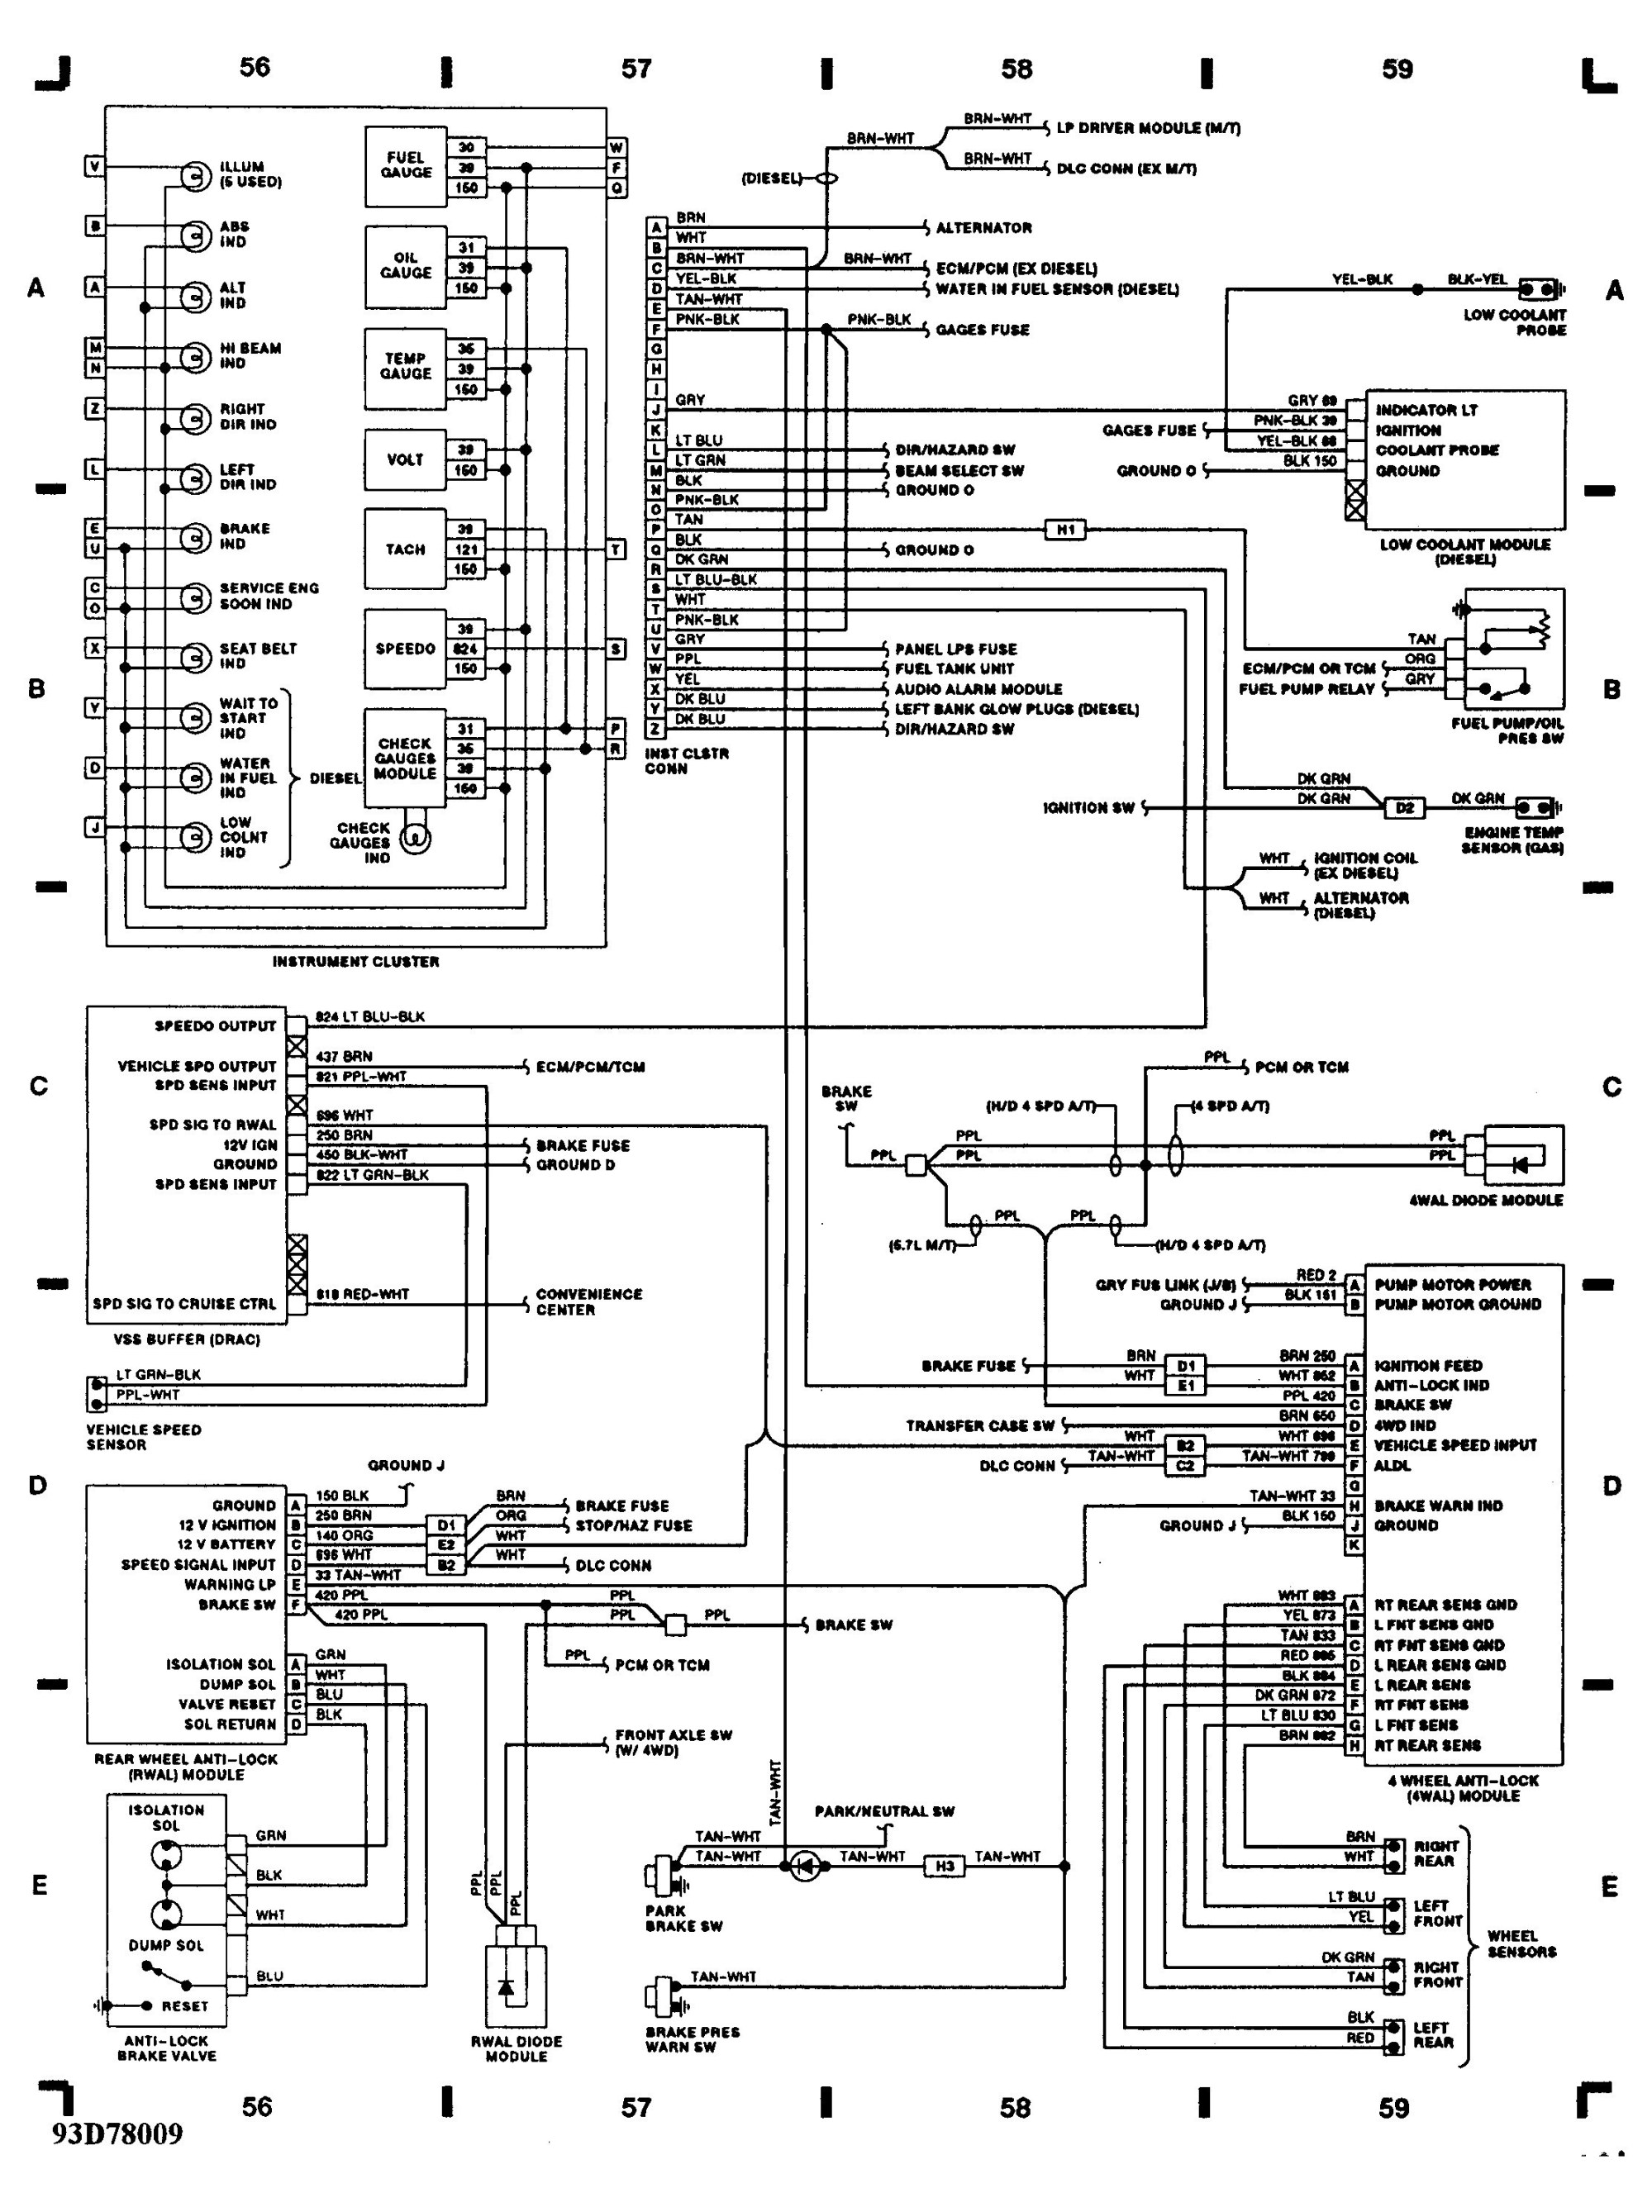 hight resolution of 350 chevy engine diagram 5 7 liter chevy engine diagram 2 of 350 chevy engine diagram